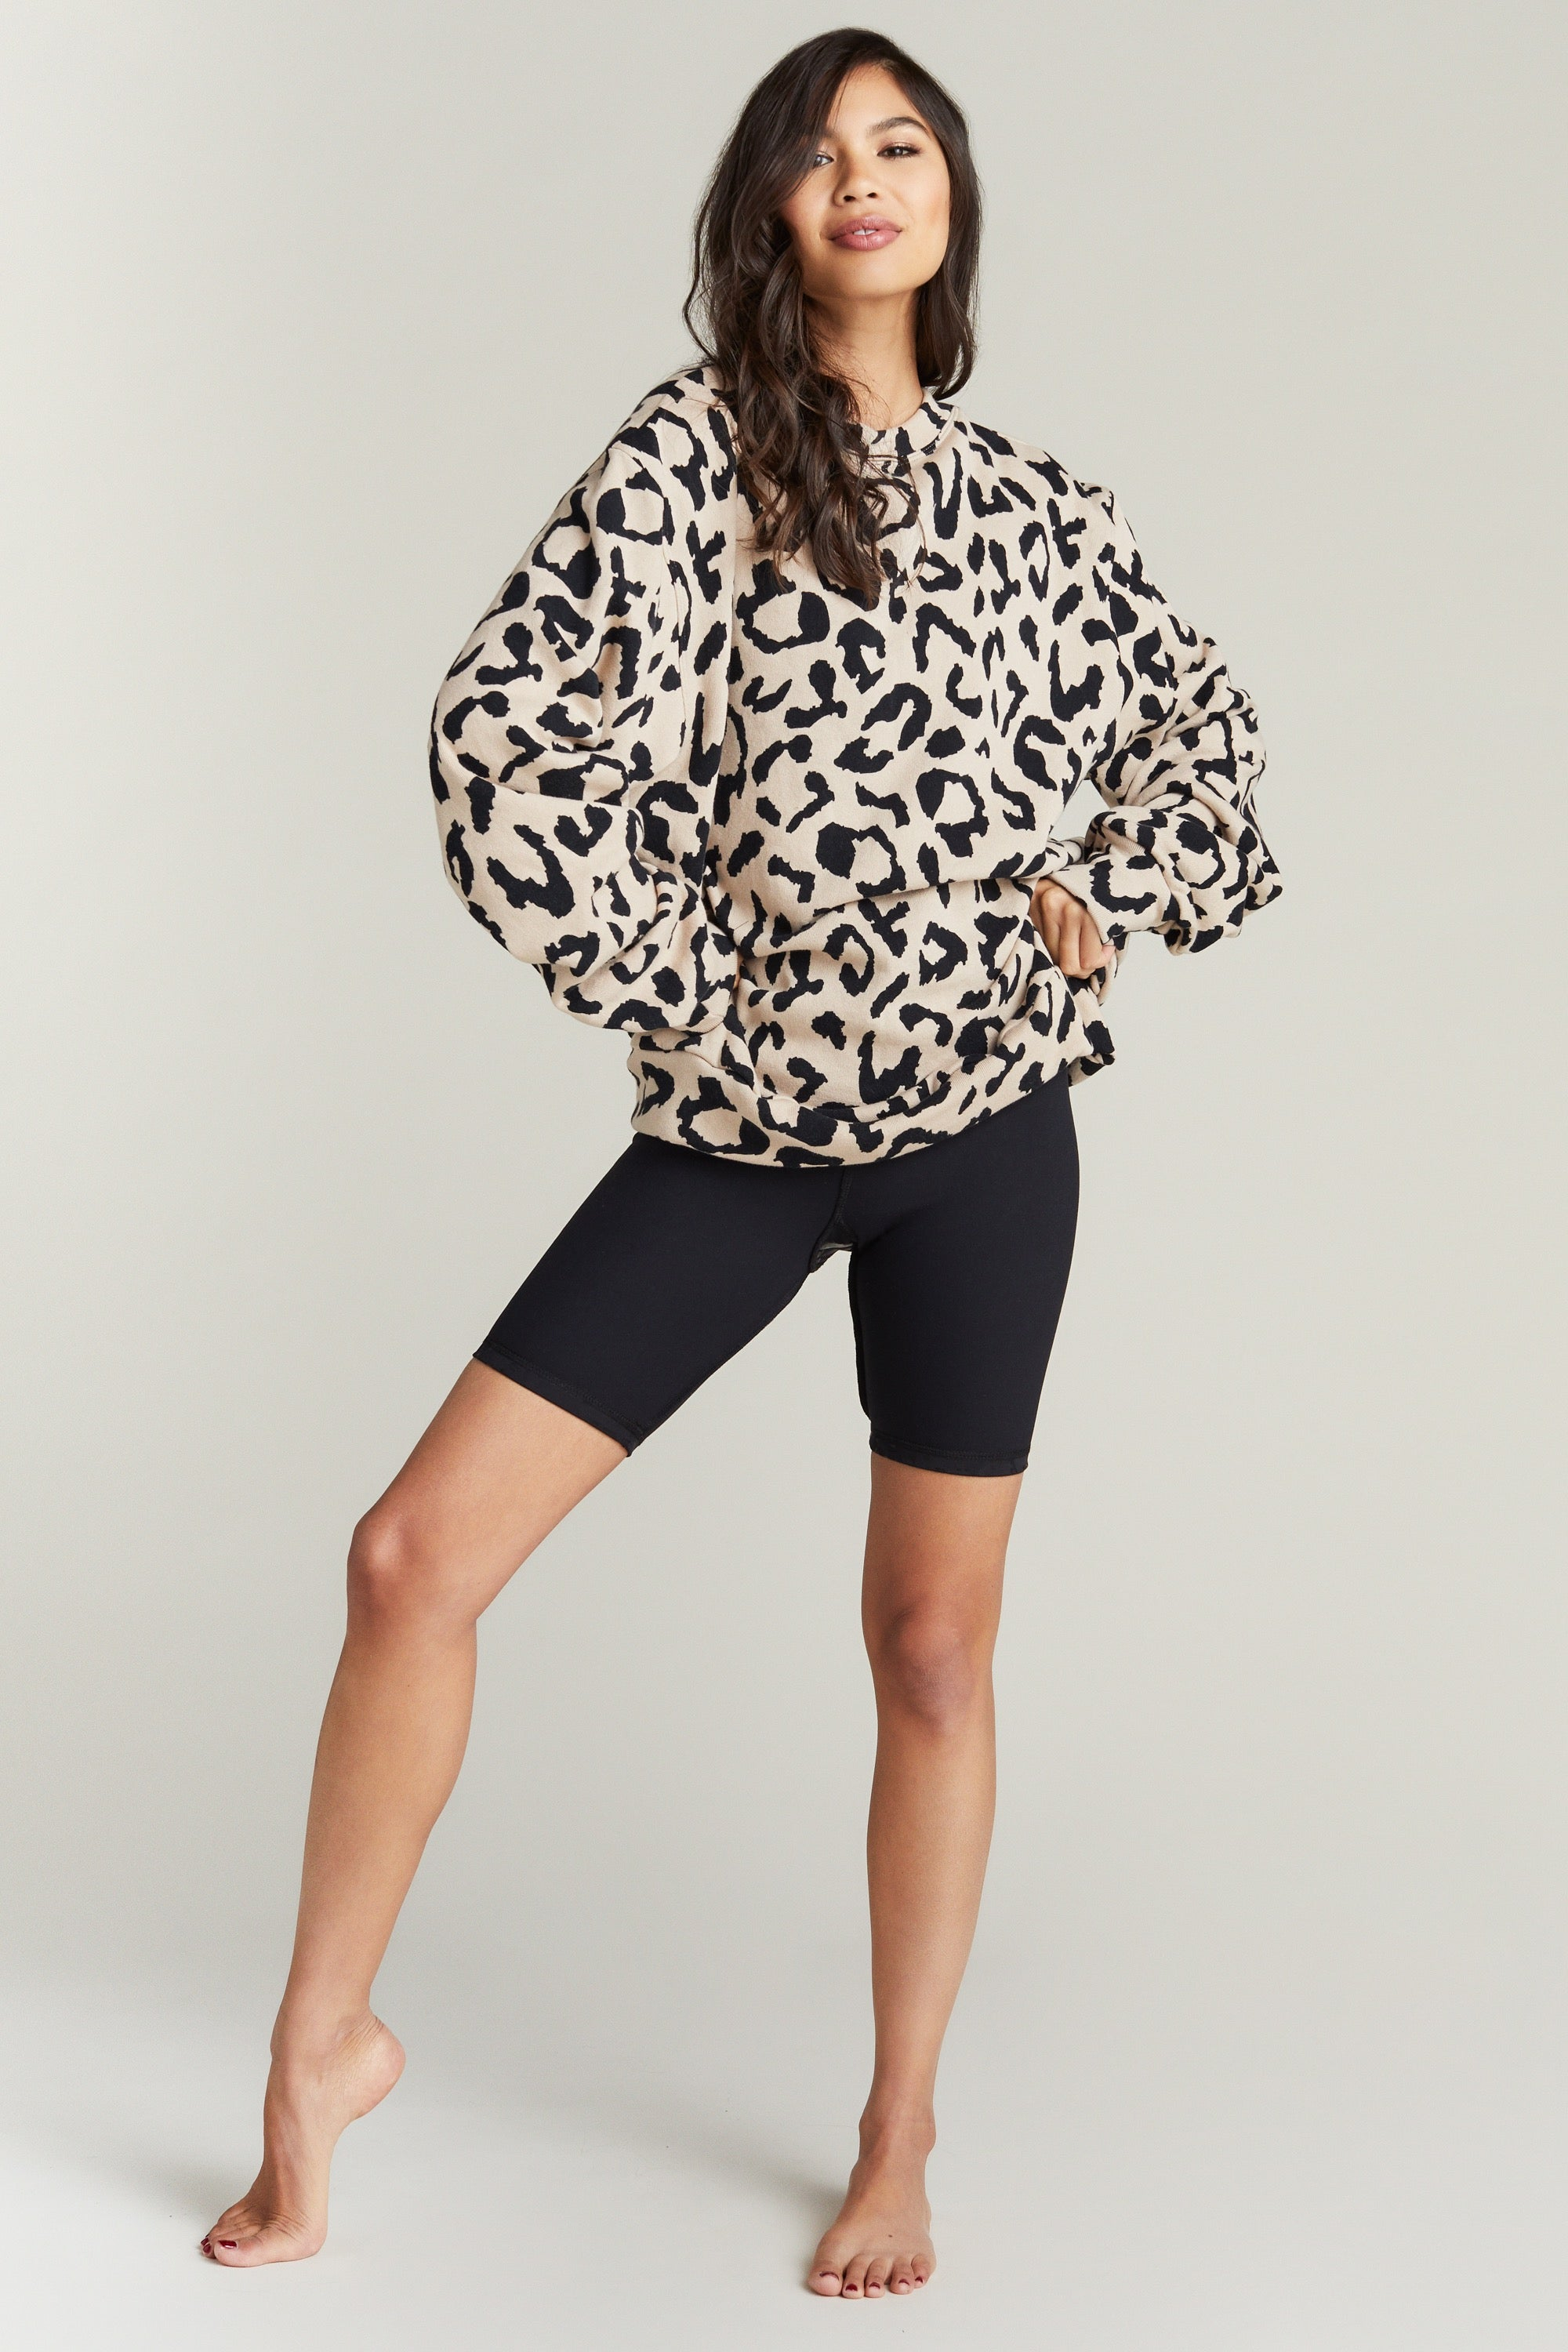 MASON SWEATSHIRT- CREAM CHEETAH